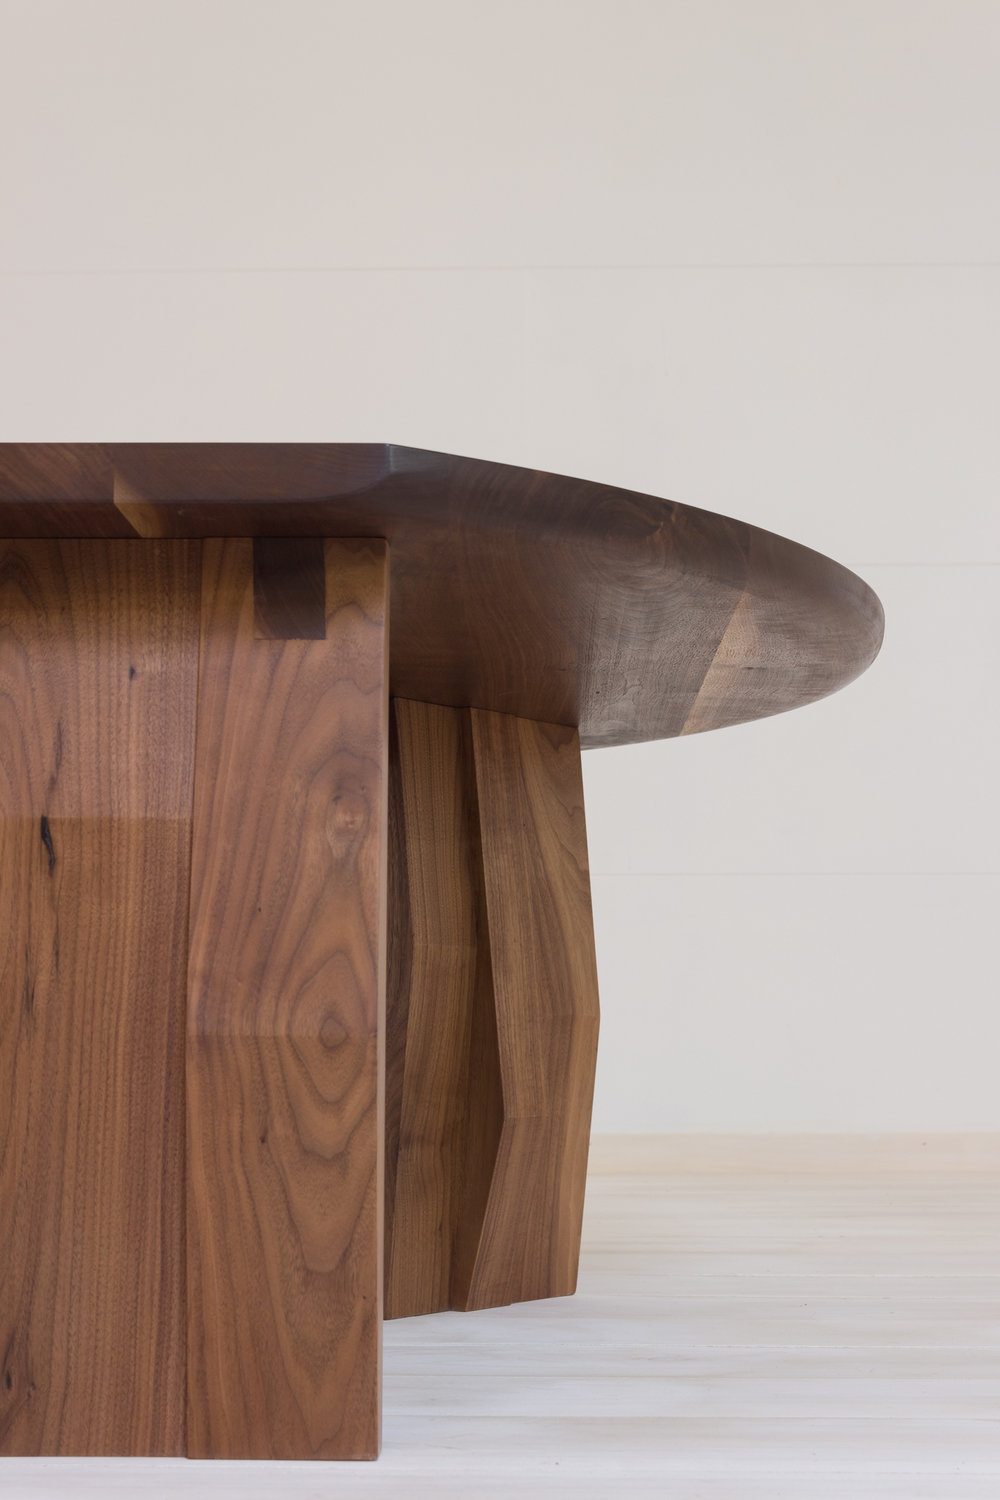 CoffeeTable_013.JPG